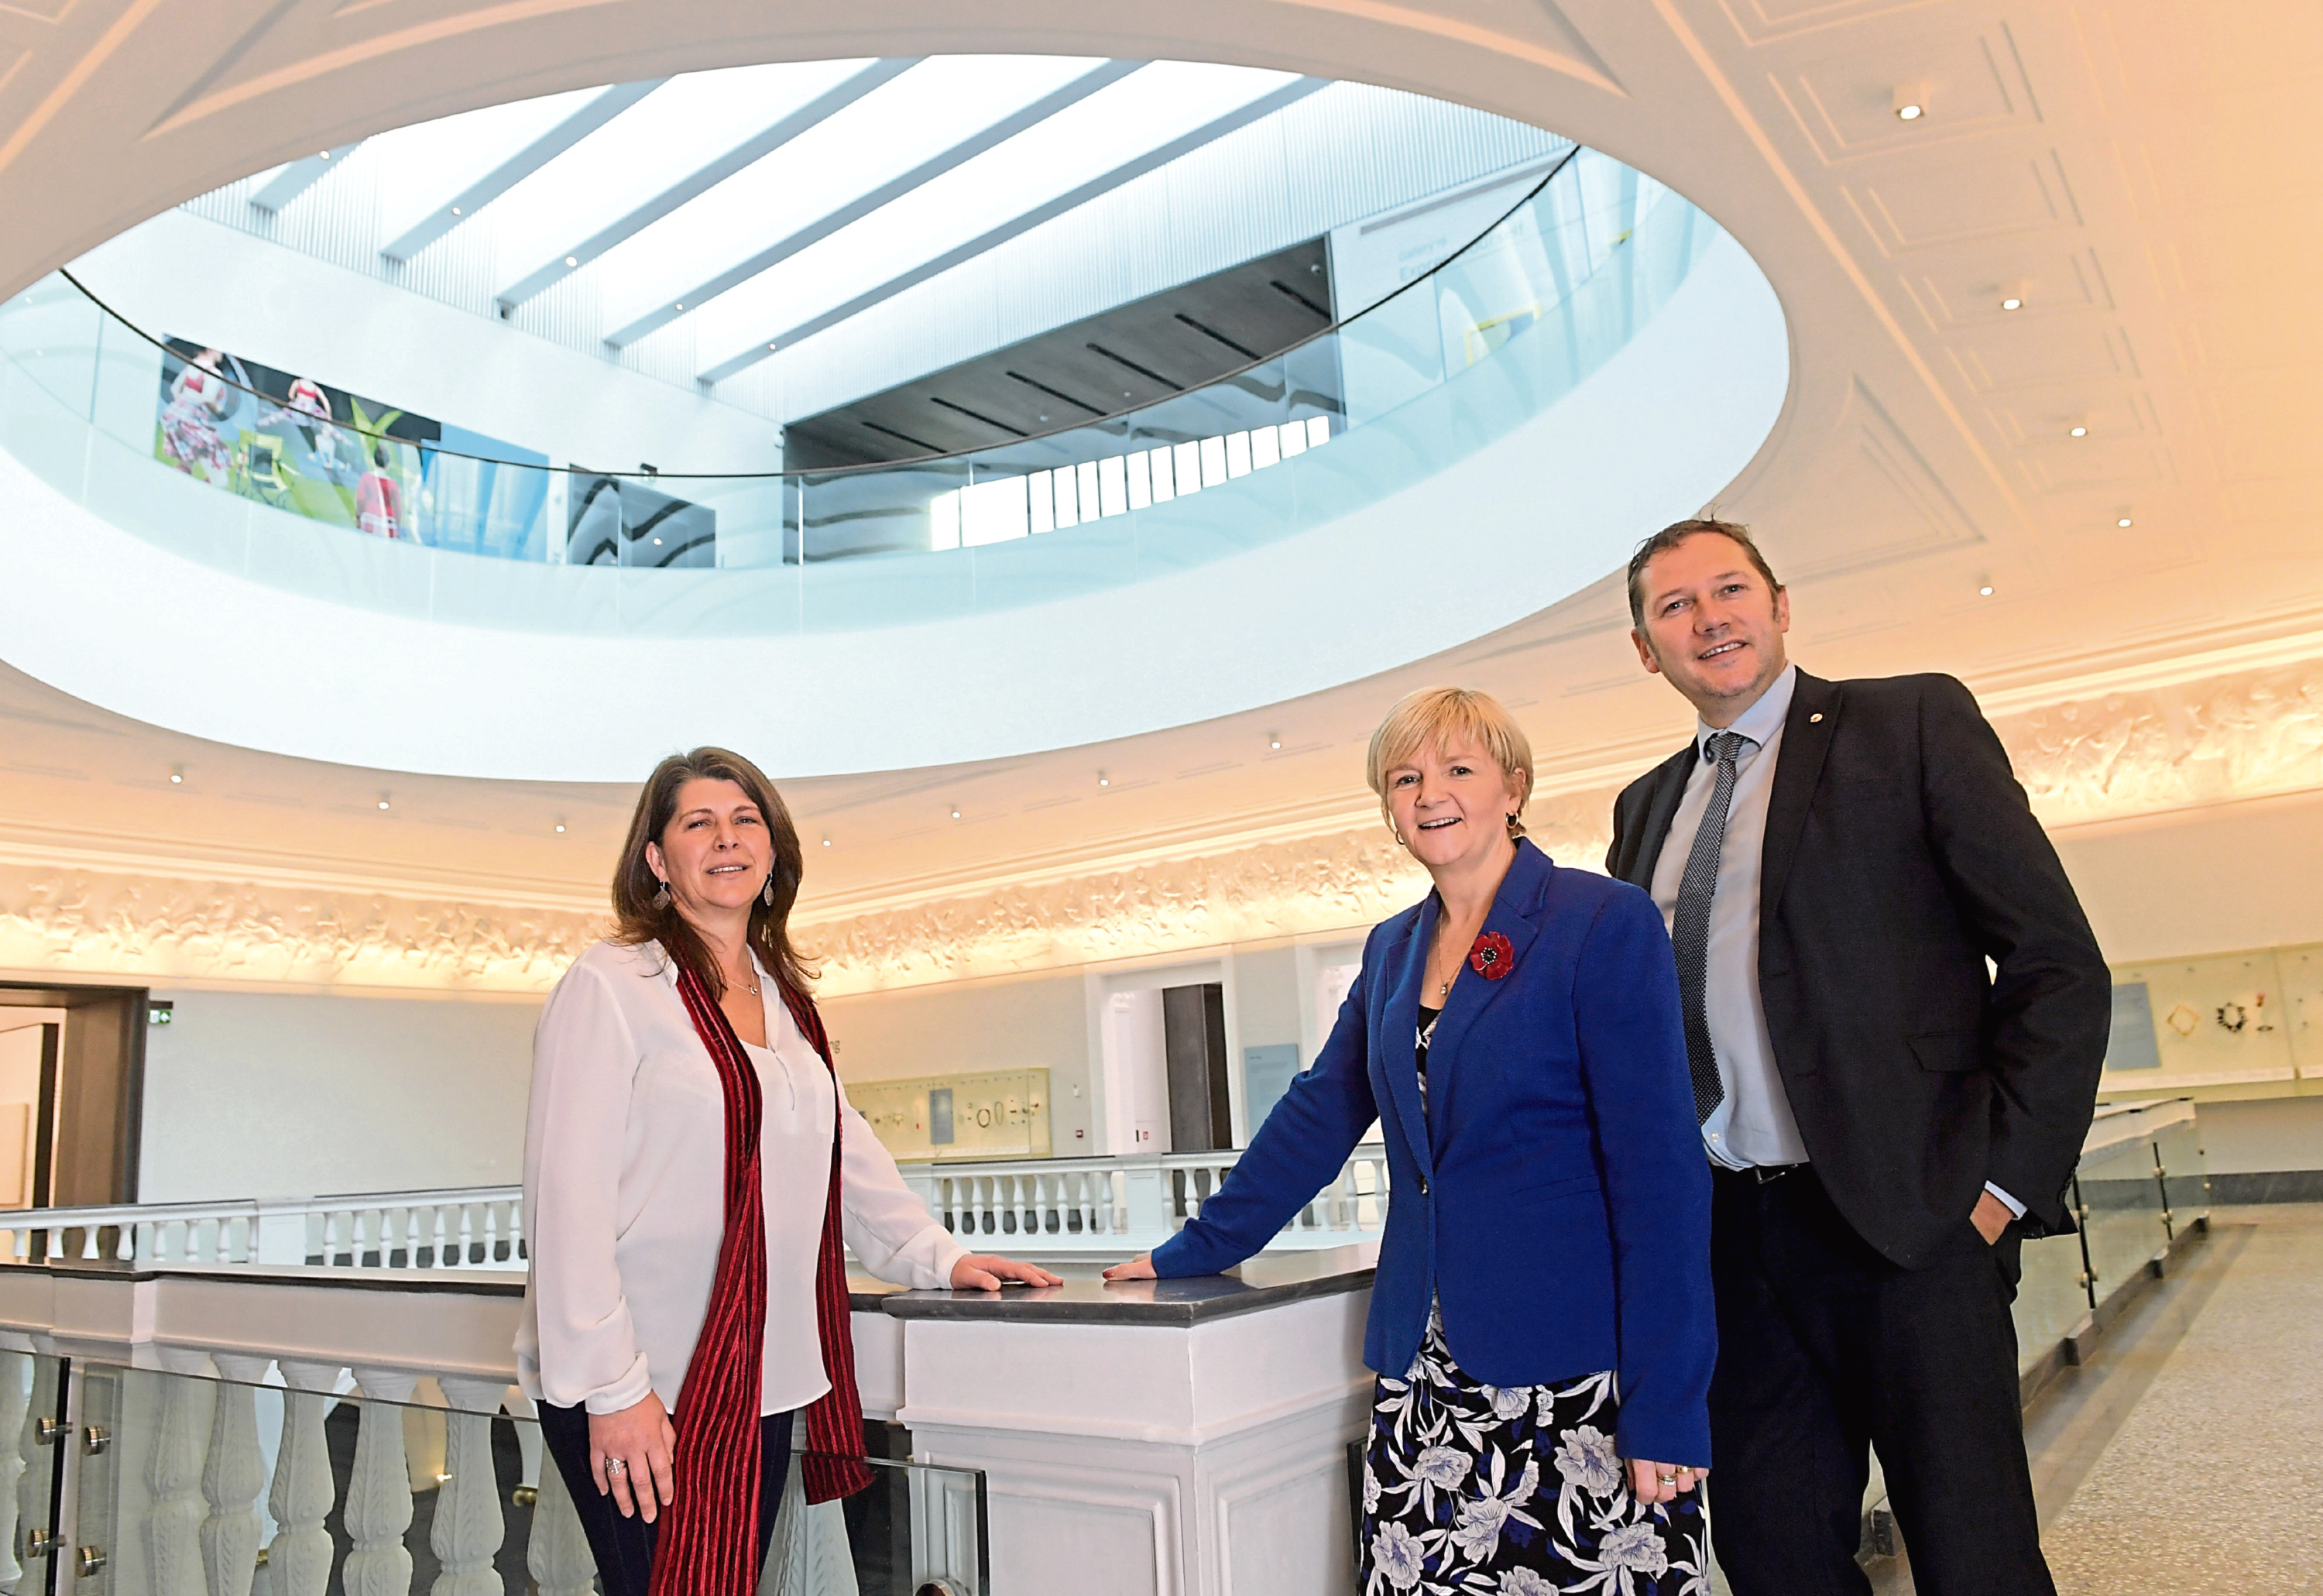 Marie Boulton with council leaders Jenny Laing and Douglas Lumsden inside the art gallery. Picture: Kath Flannery